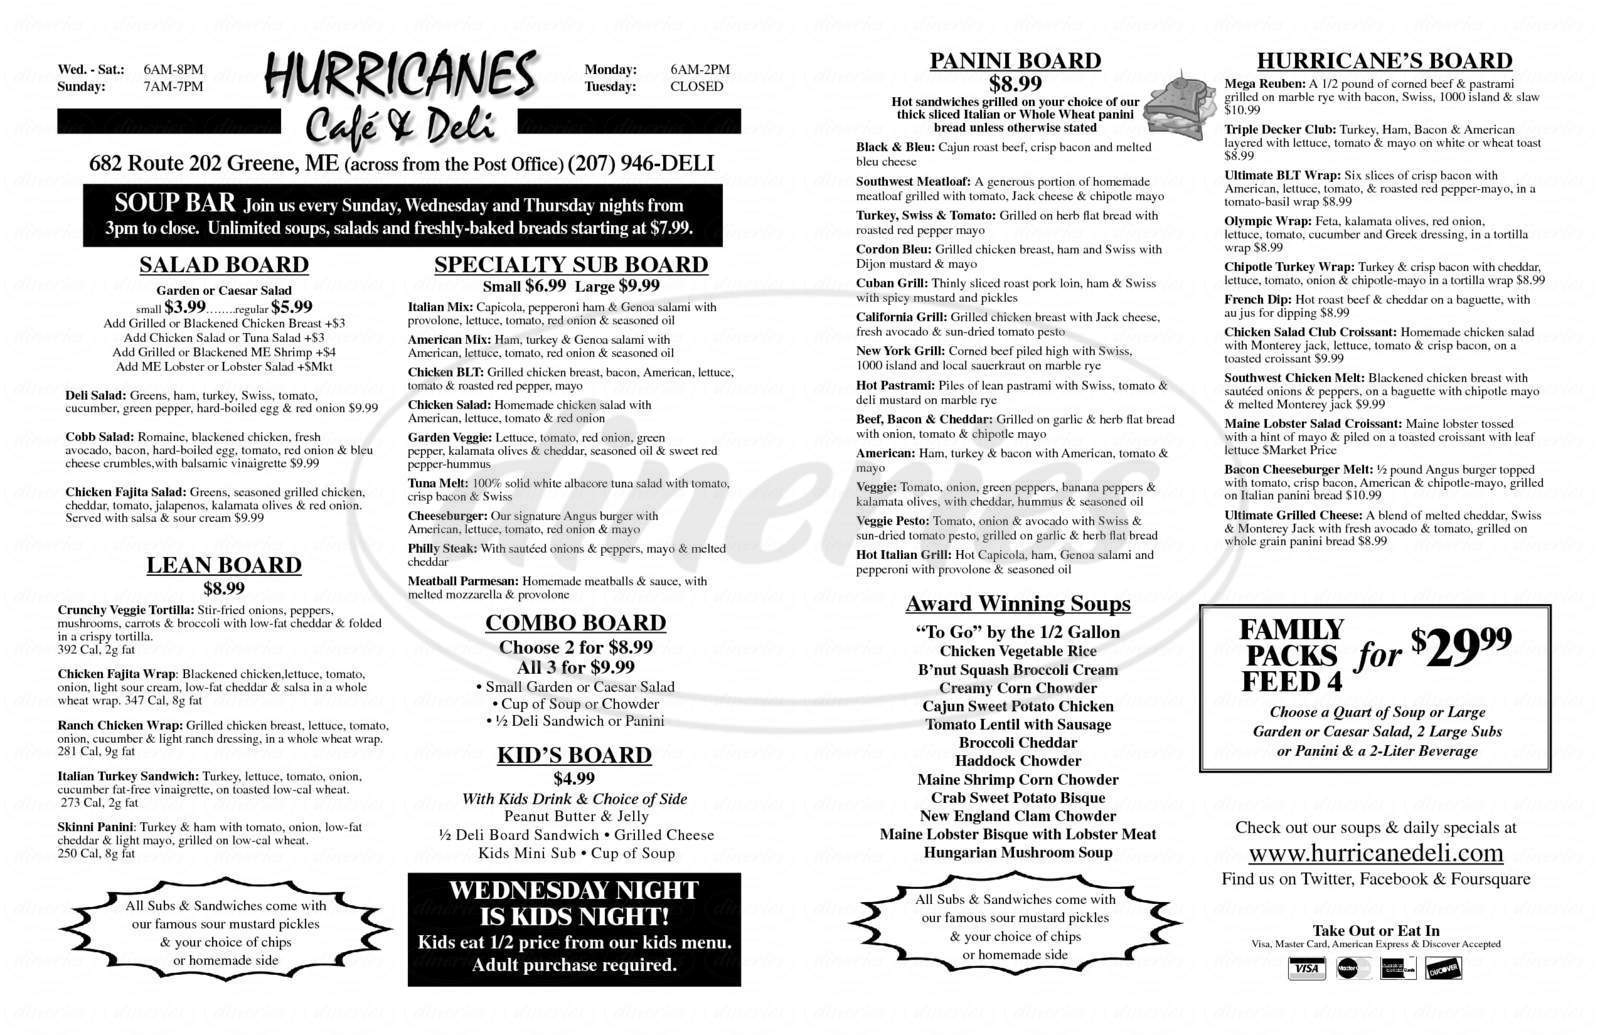 menu for Hurricane's Cafe & Deli